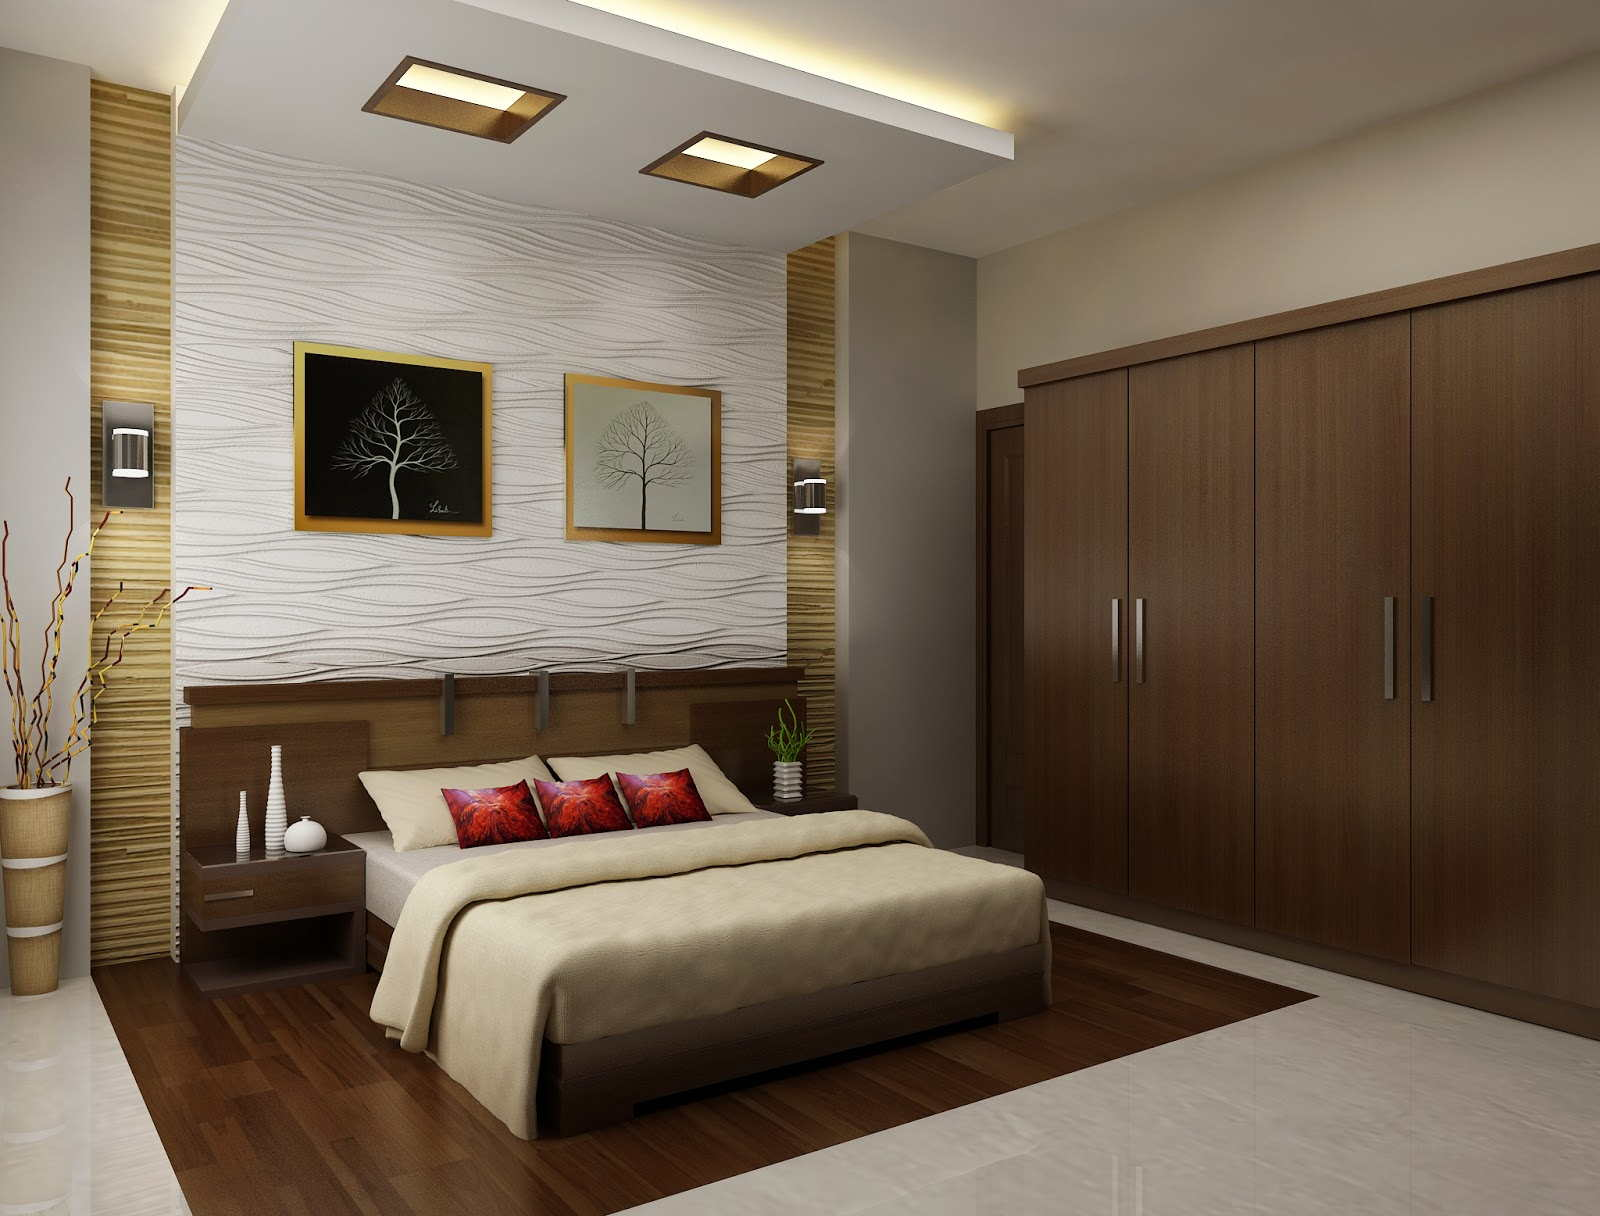 11 attractive bedroom design ideas that will make your - Master bedroom ideas for small spaces ...